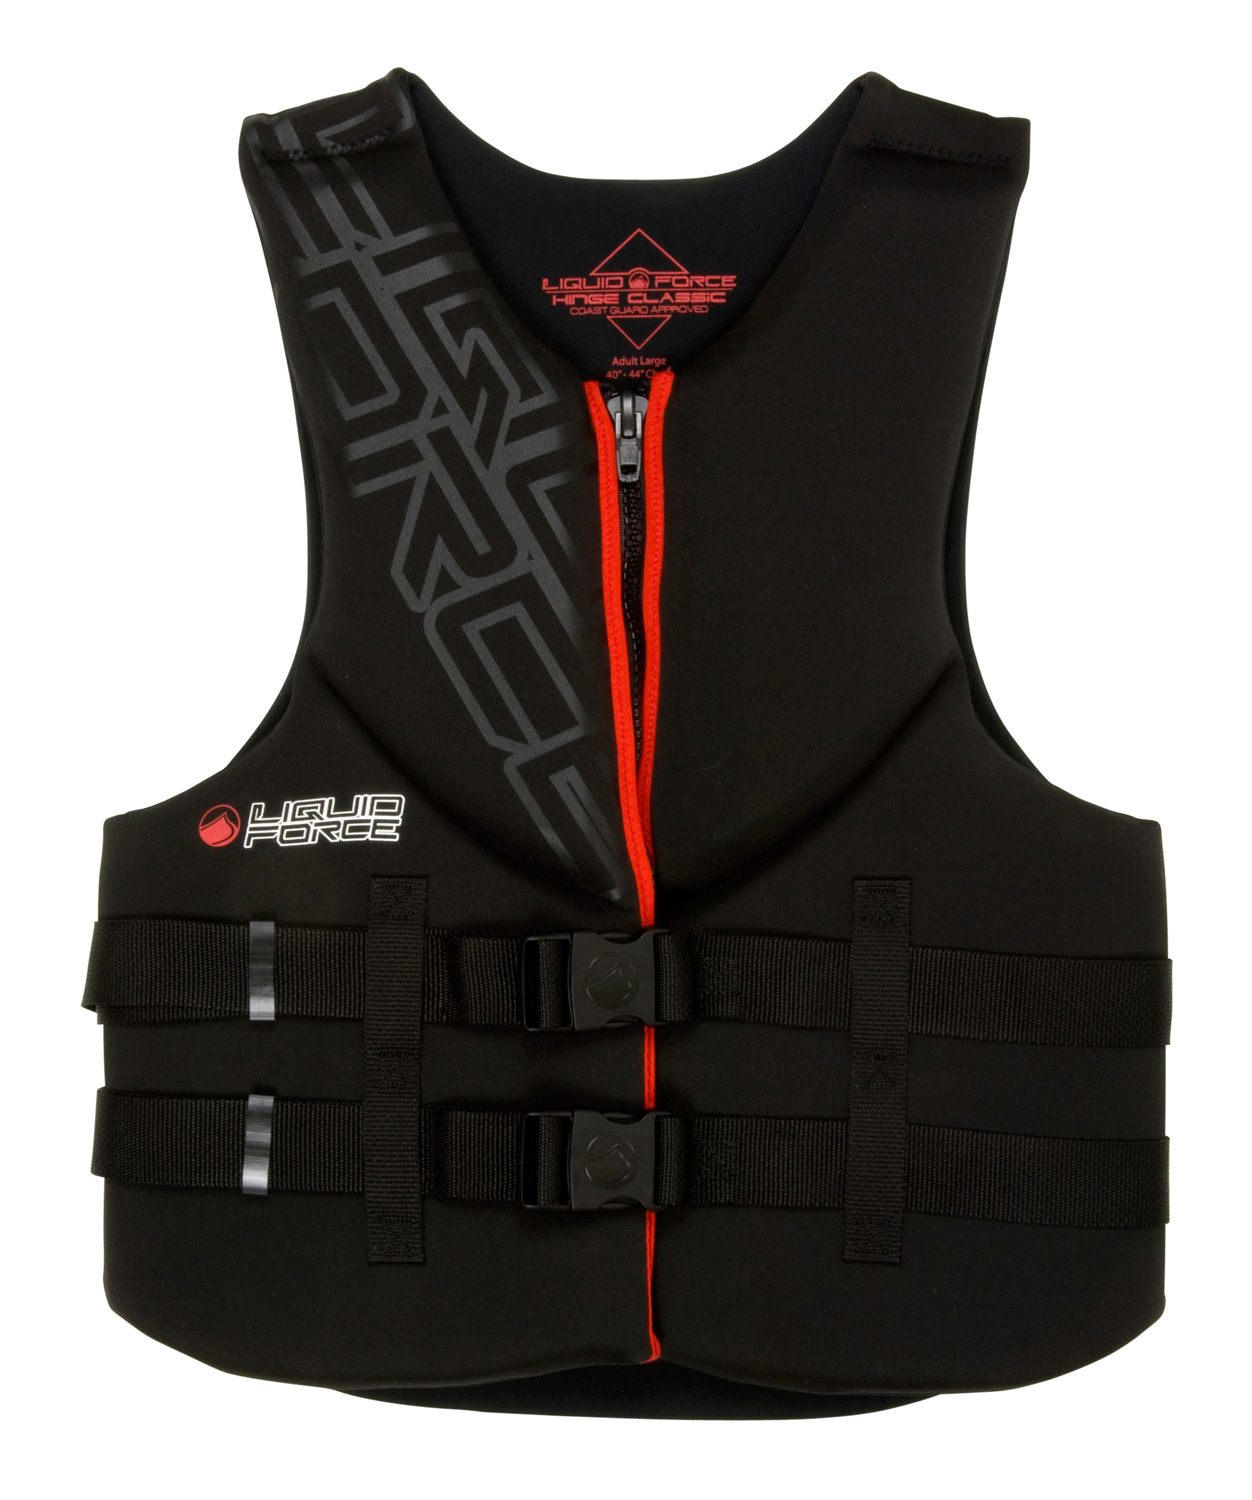 Wake The Hinge Classic is a great vest for wake boarding, tubing, or just floating down river. - $59.99